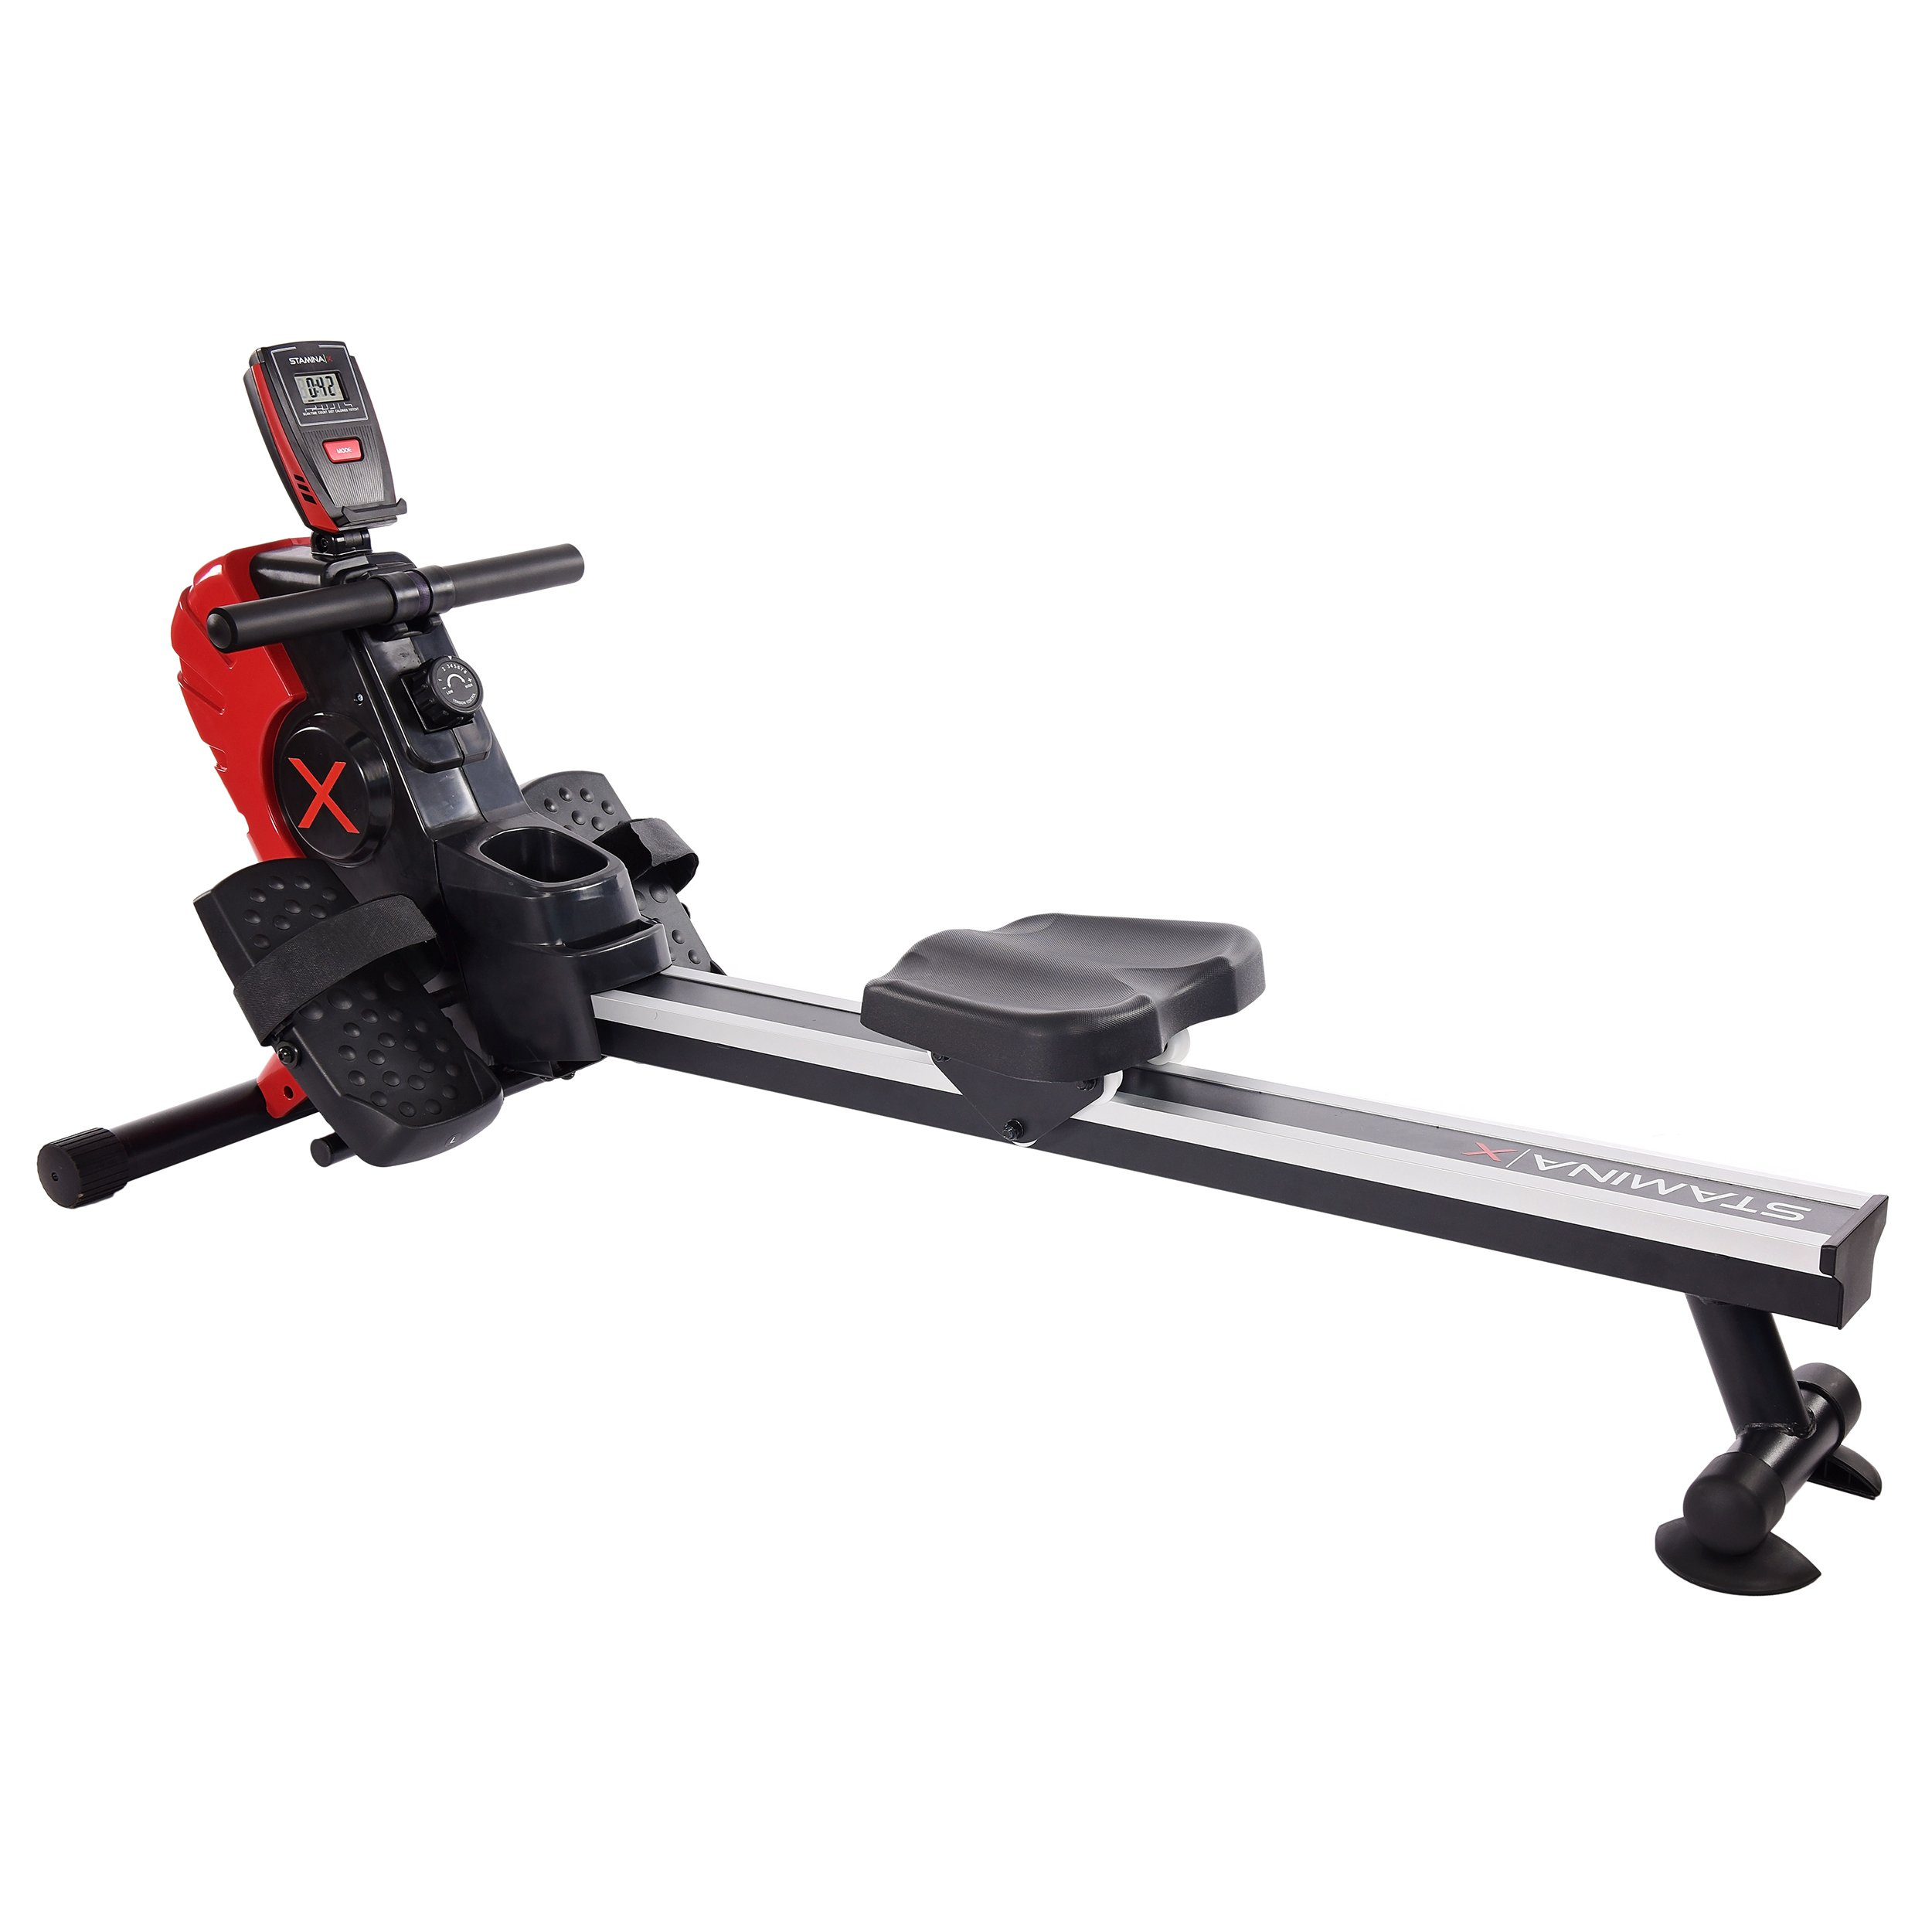 Stamina X Magnetic Rower with 8 Level Magnetic Resistance, Multi-Functional Workout Monitor, and Floor Protectors (Red)